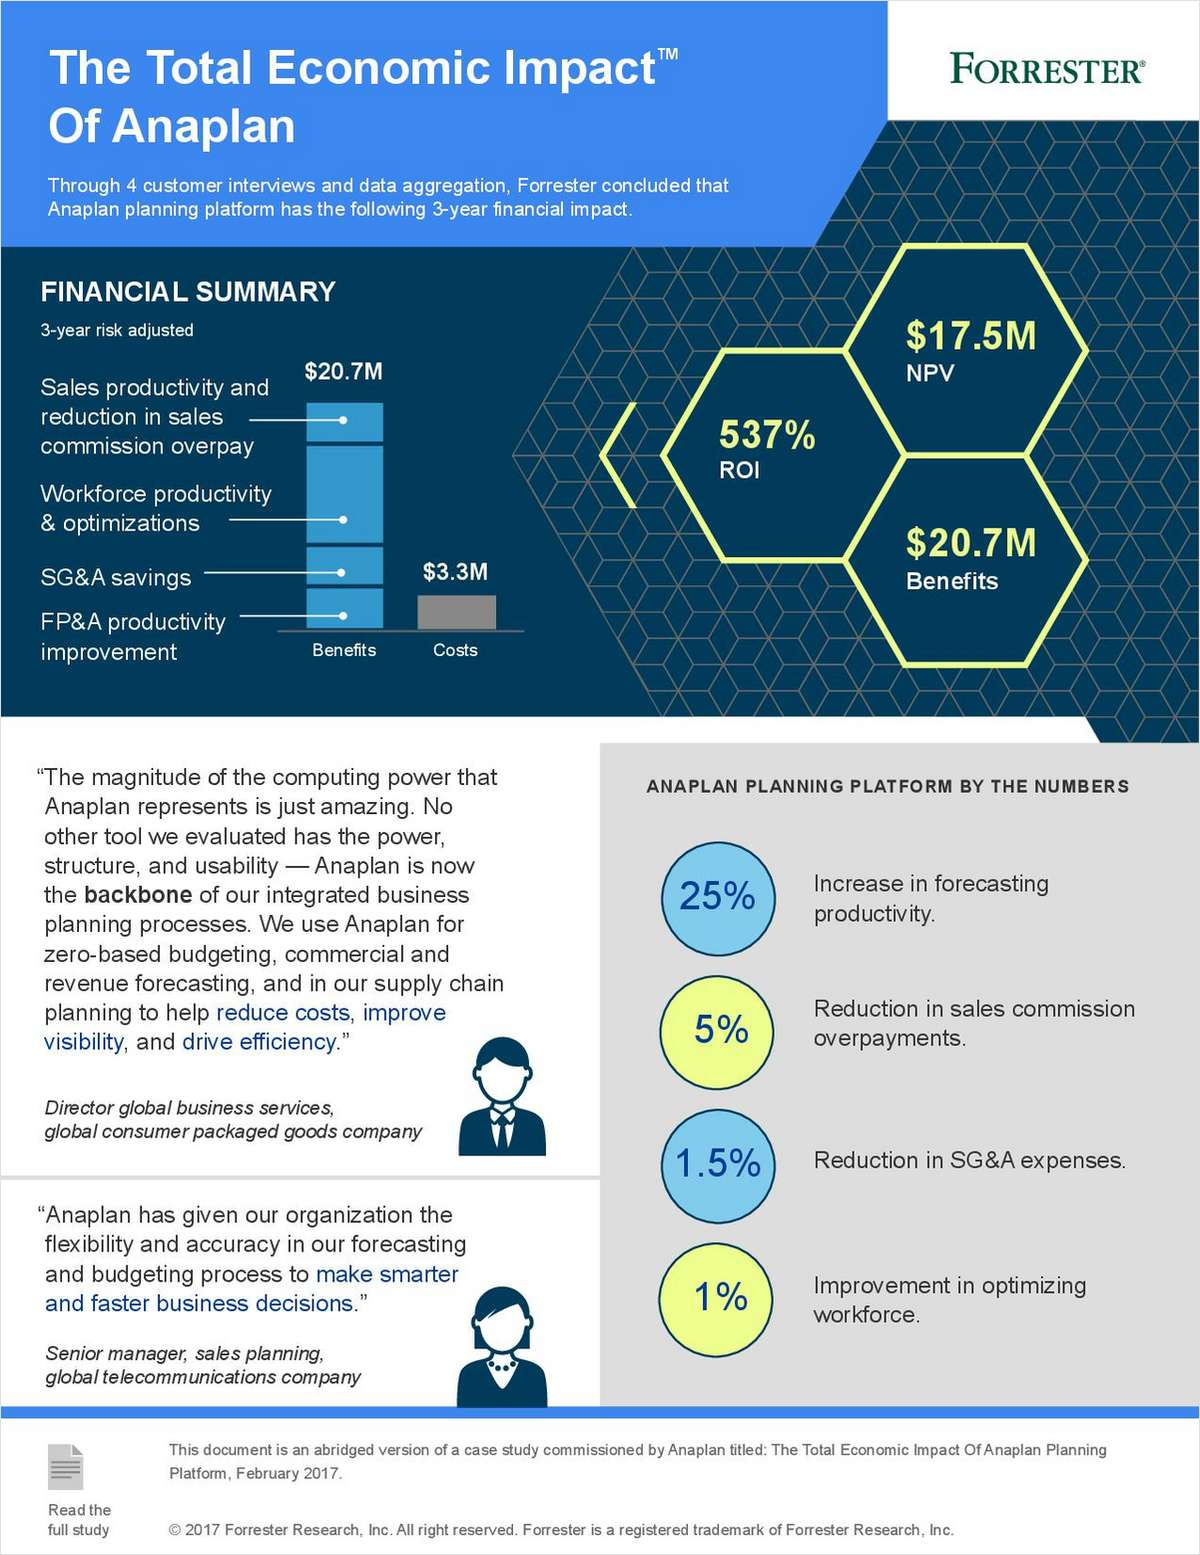 Forrester: The Total Economic Impact of Anaplan